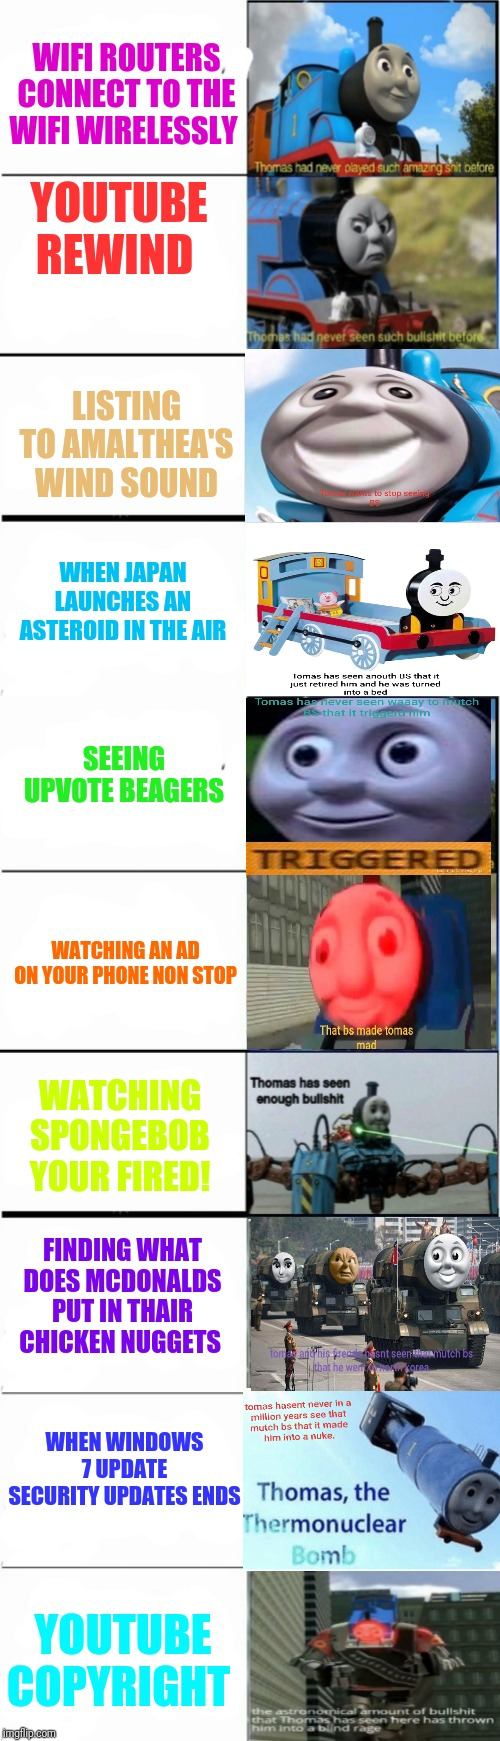 Thomas BS rating: | YOUTUBE REWIND WIFI ROUTERS CONNECT TO THE WIFI WIRELESSLY WHEN WINDOWS 7 UPDATE SECURITY UPDATES ENDS SEEING UPVOTE BEAGERS YOUTUBE COPYRIG | image tagged in thomas had never seen such bullshit before,thomas the tank engine,youtube,mcdonalds,wifi,upvote beggers | made w/ Imgflip meme maker